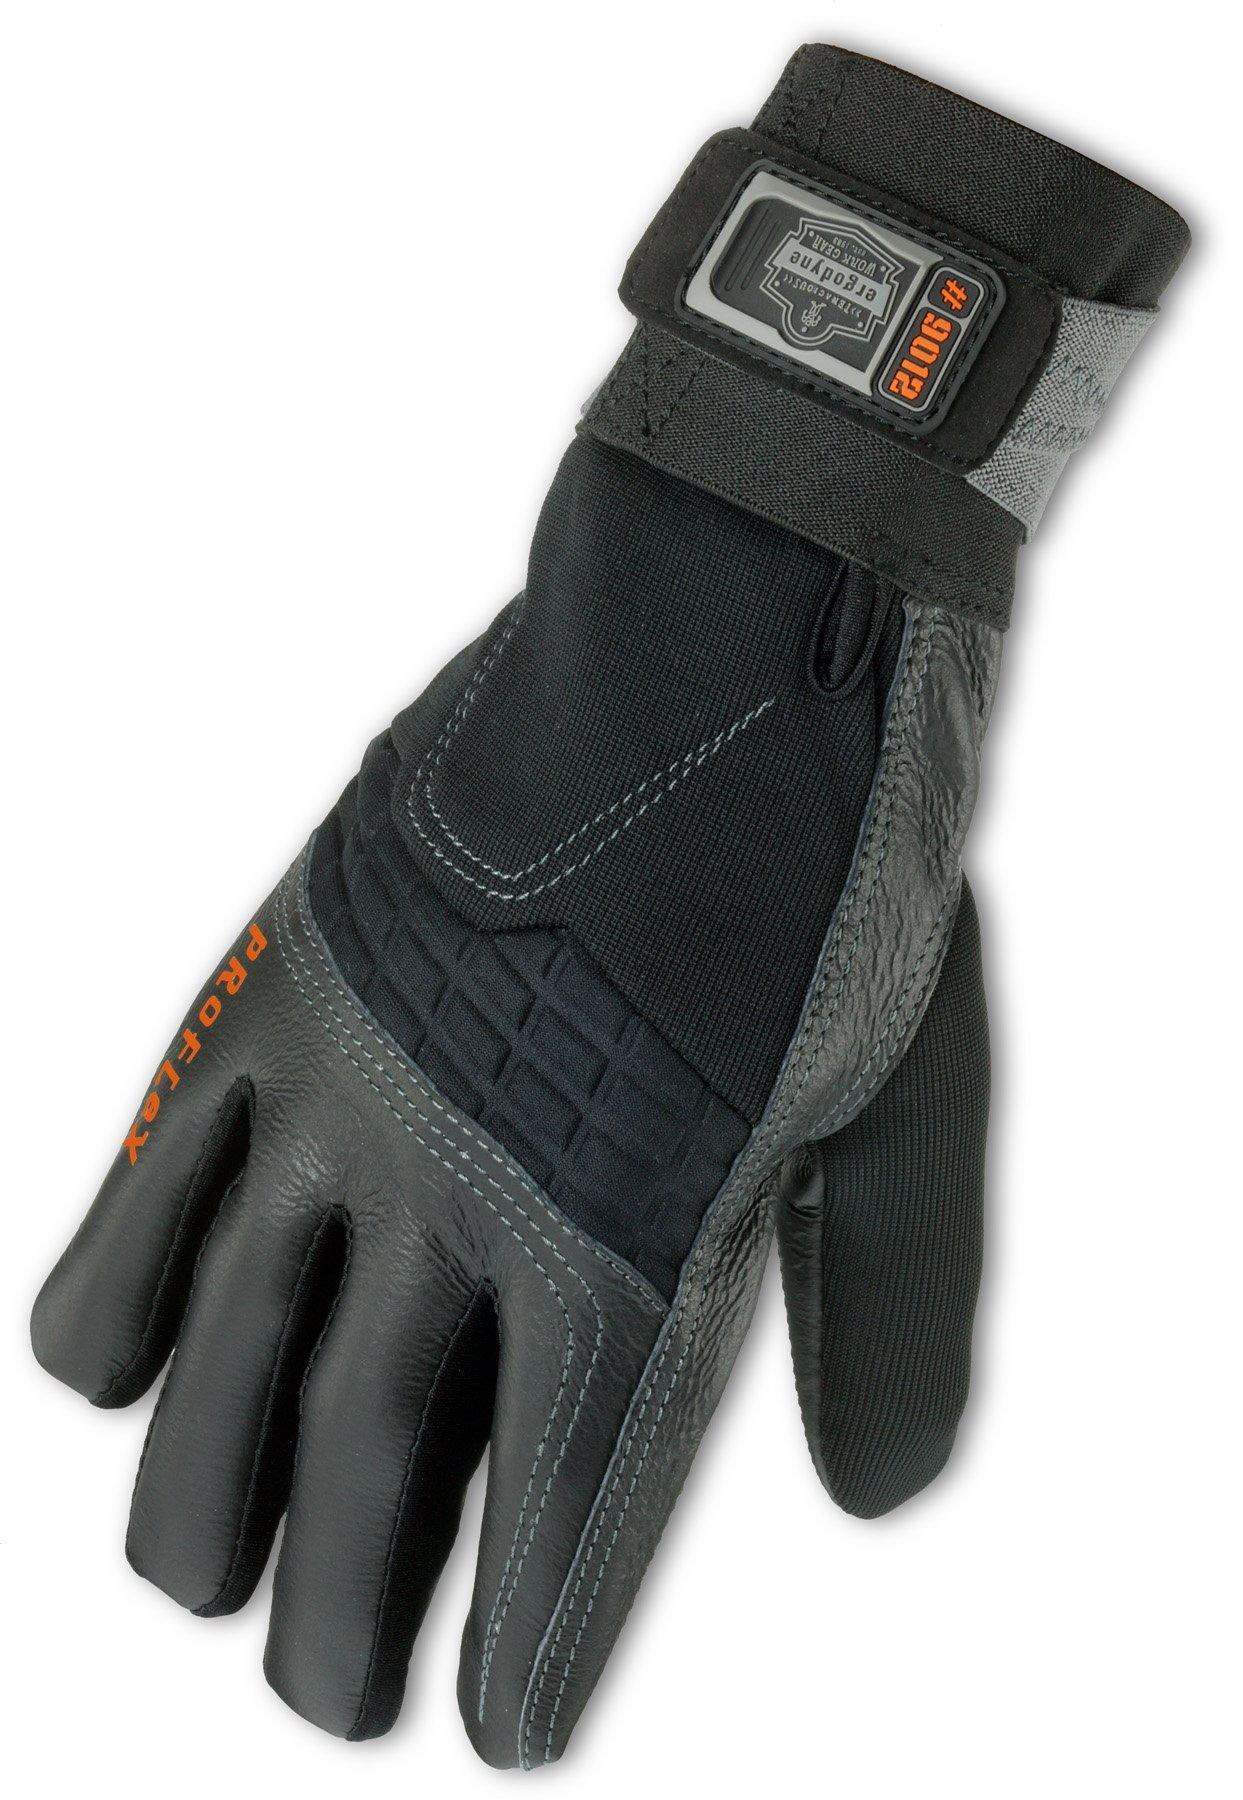 Ergodyne ProFlex 9012 Certified Anti-Vibration Work Glove with Wrist Support, Large, Black